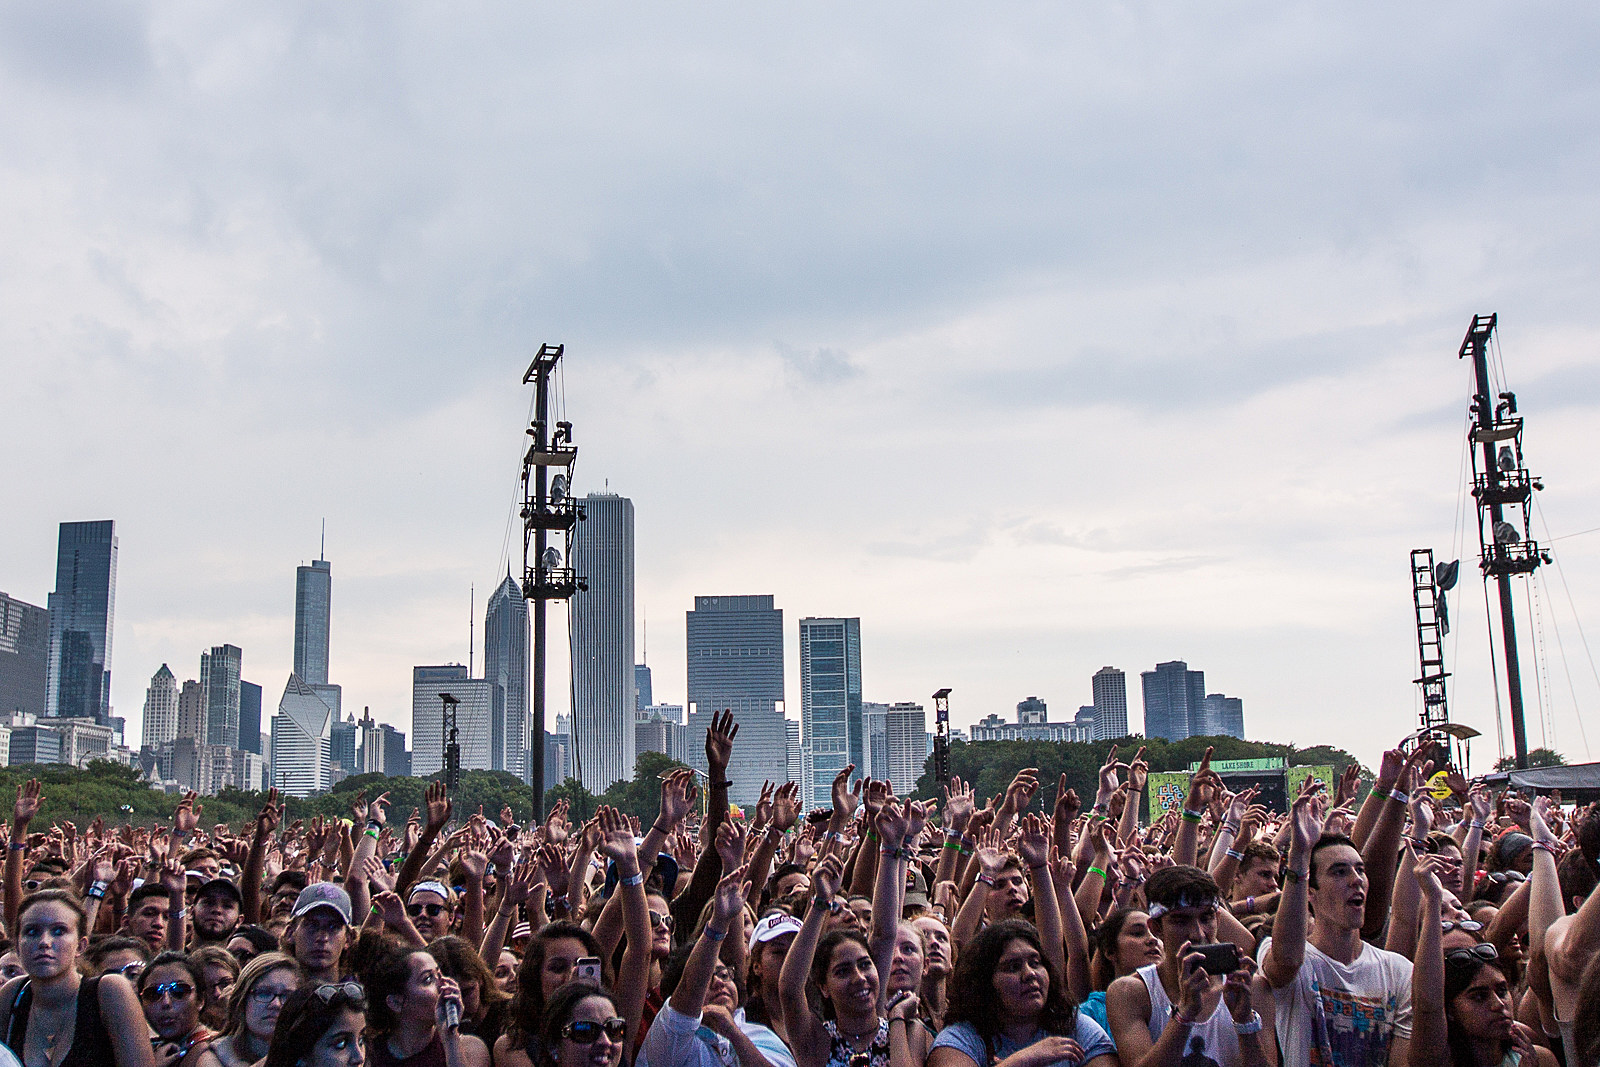 Lollapalooza 2016 (more by Brigid Gallagher)